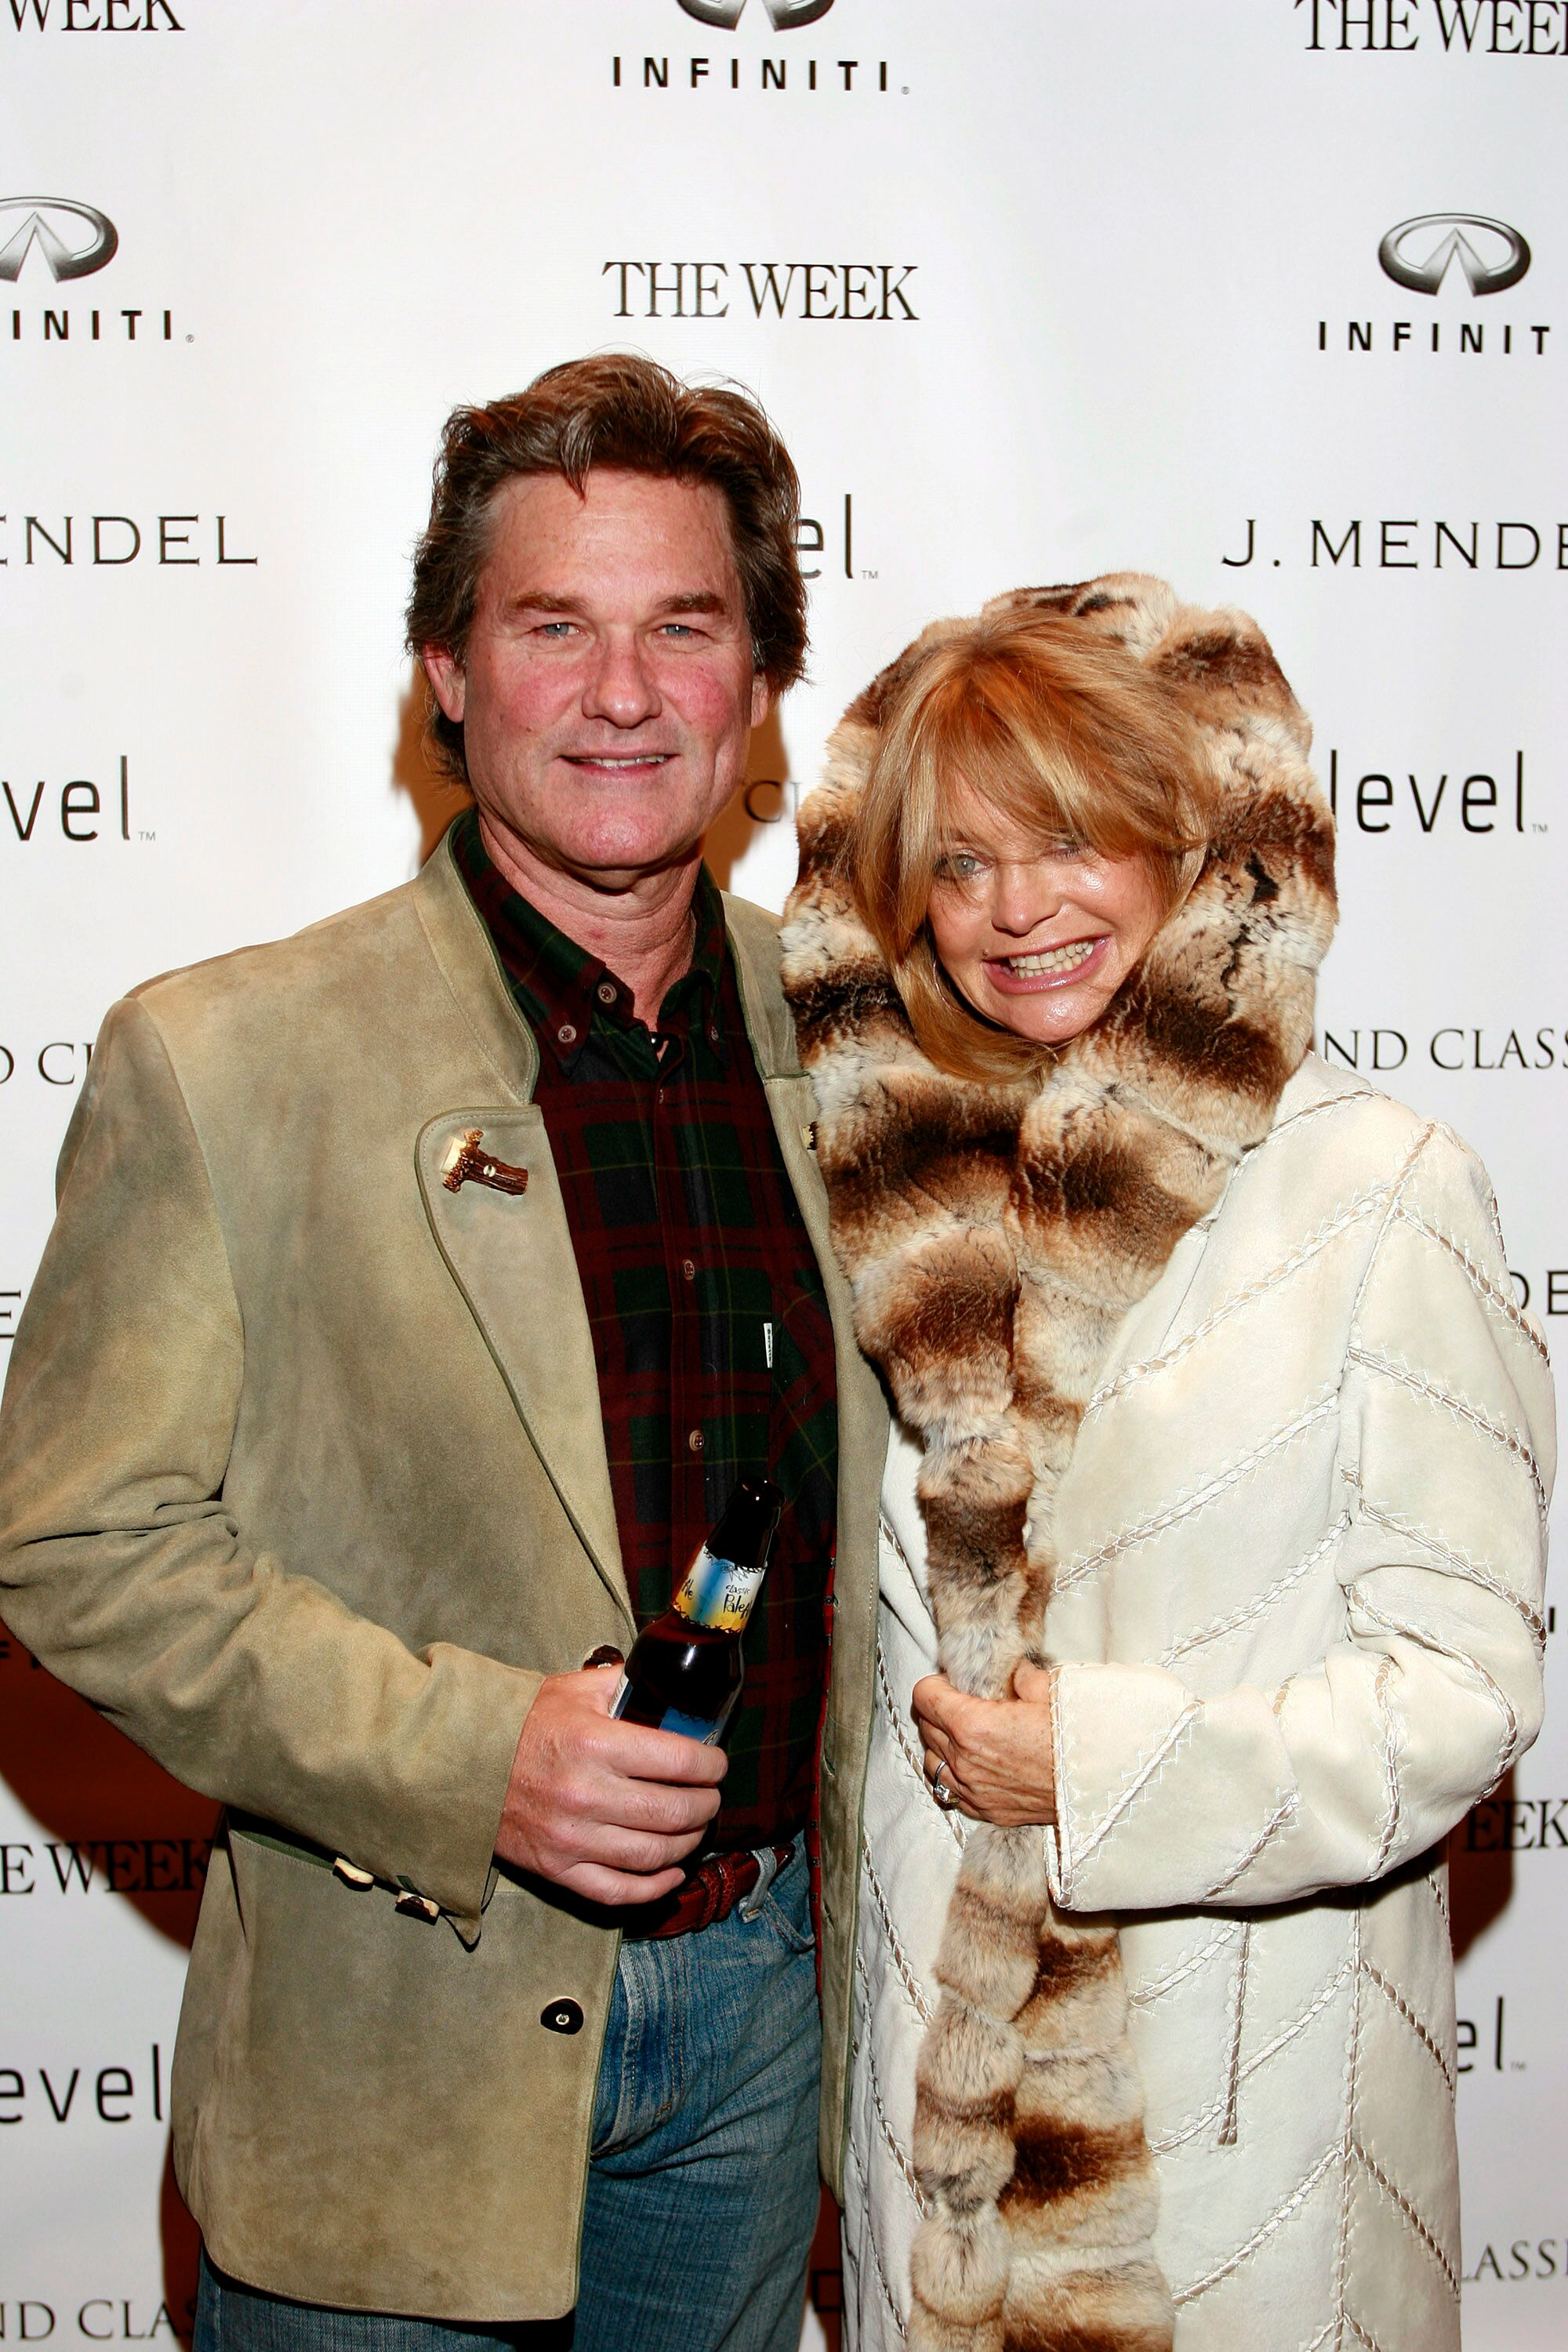 "Kurt Russell and actress Goldie Hawn attend the screening of ""To Kill a Mockingbird"" presented by The Week, J. Mendel and Infinity at The Wheeler Opera House  